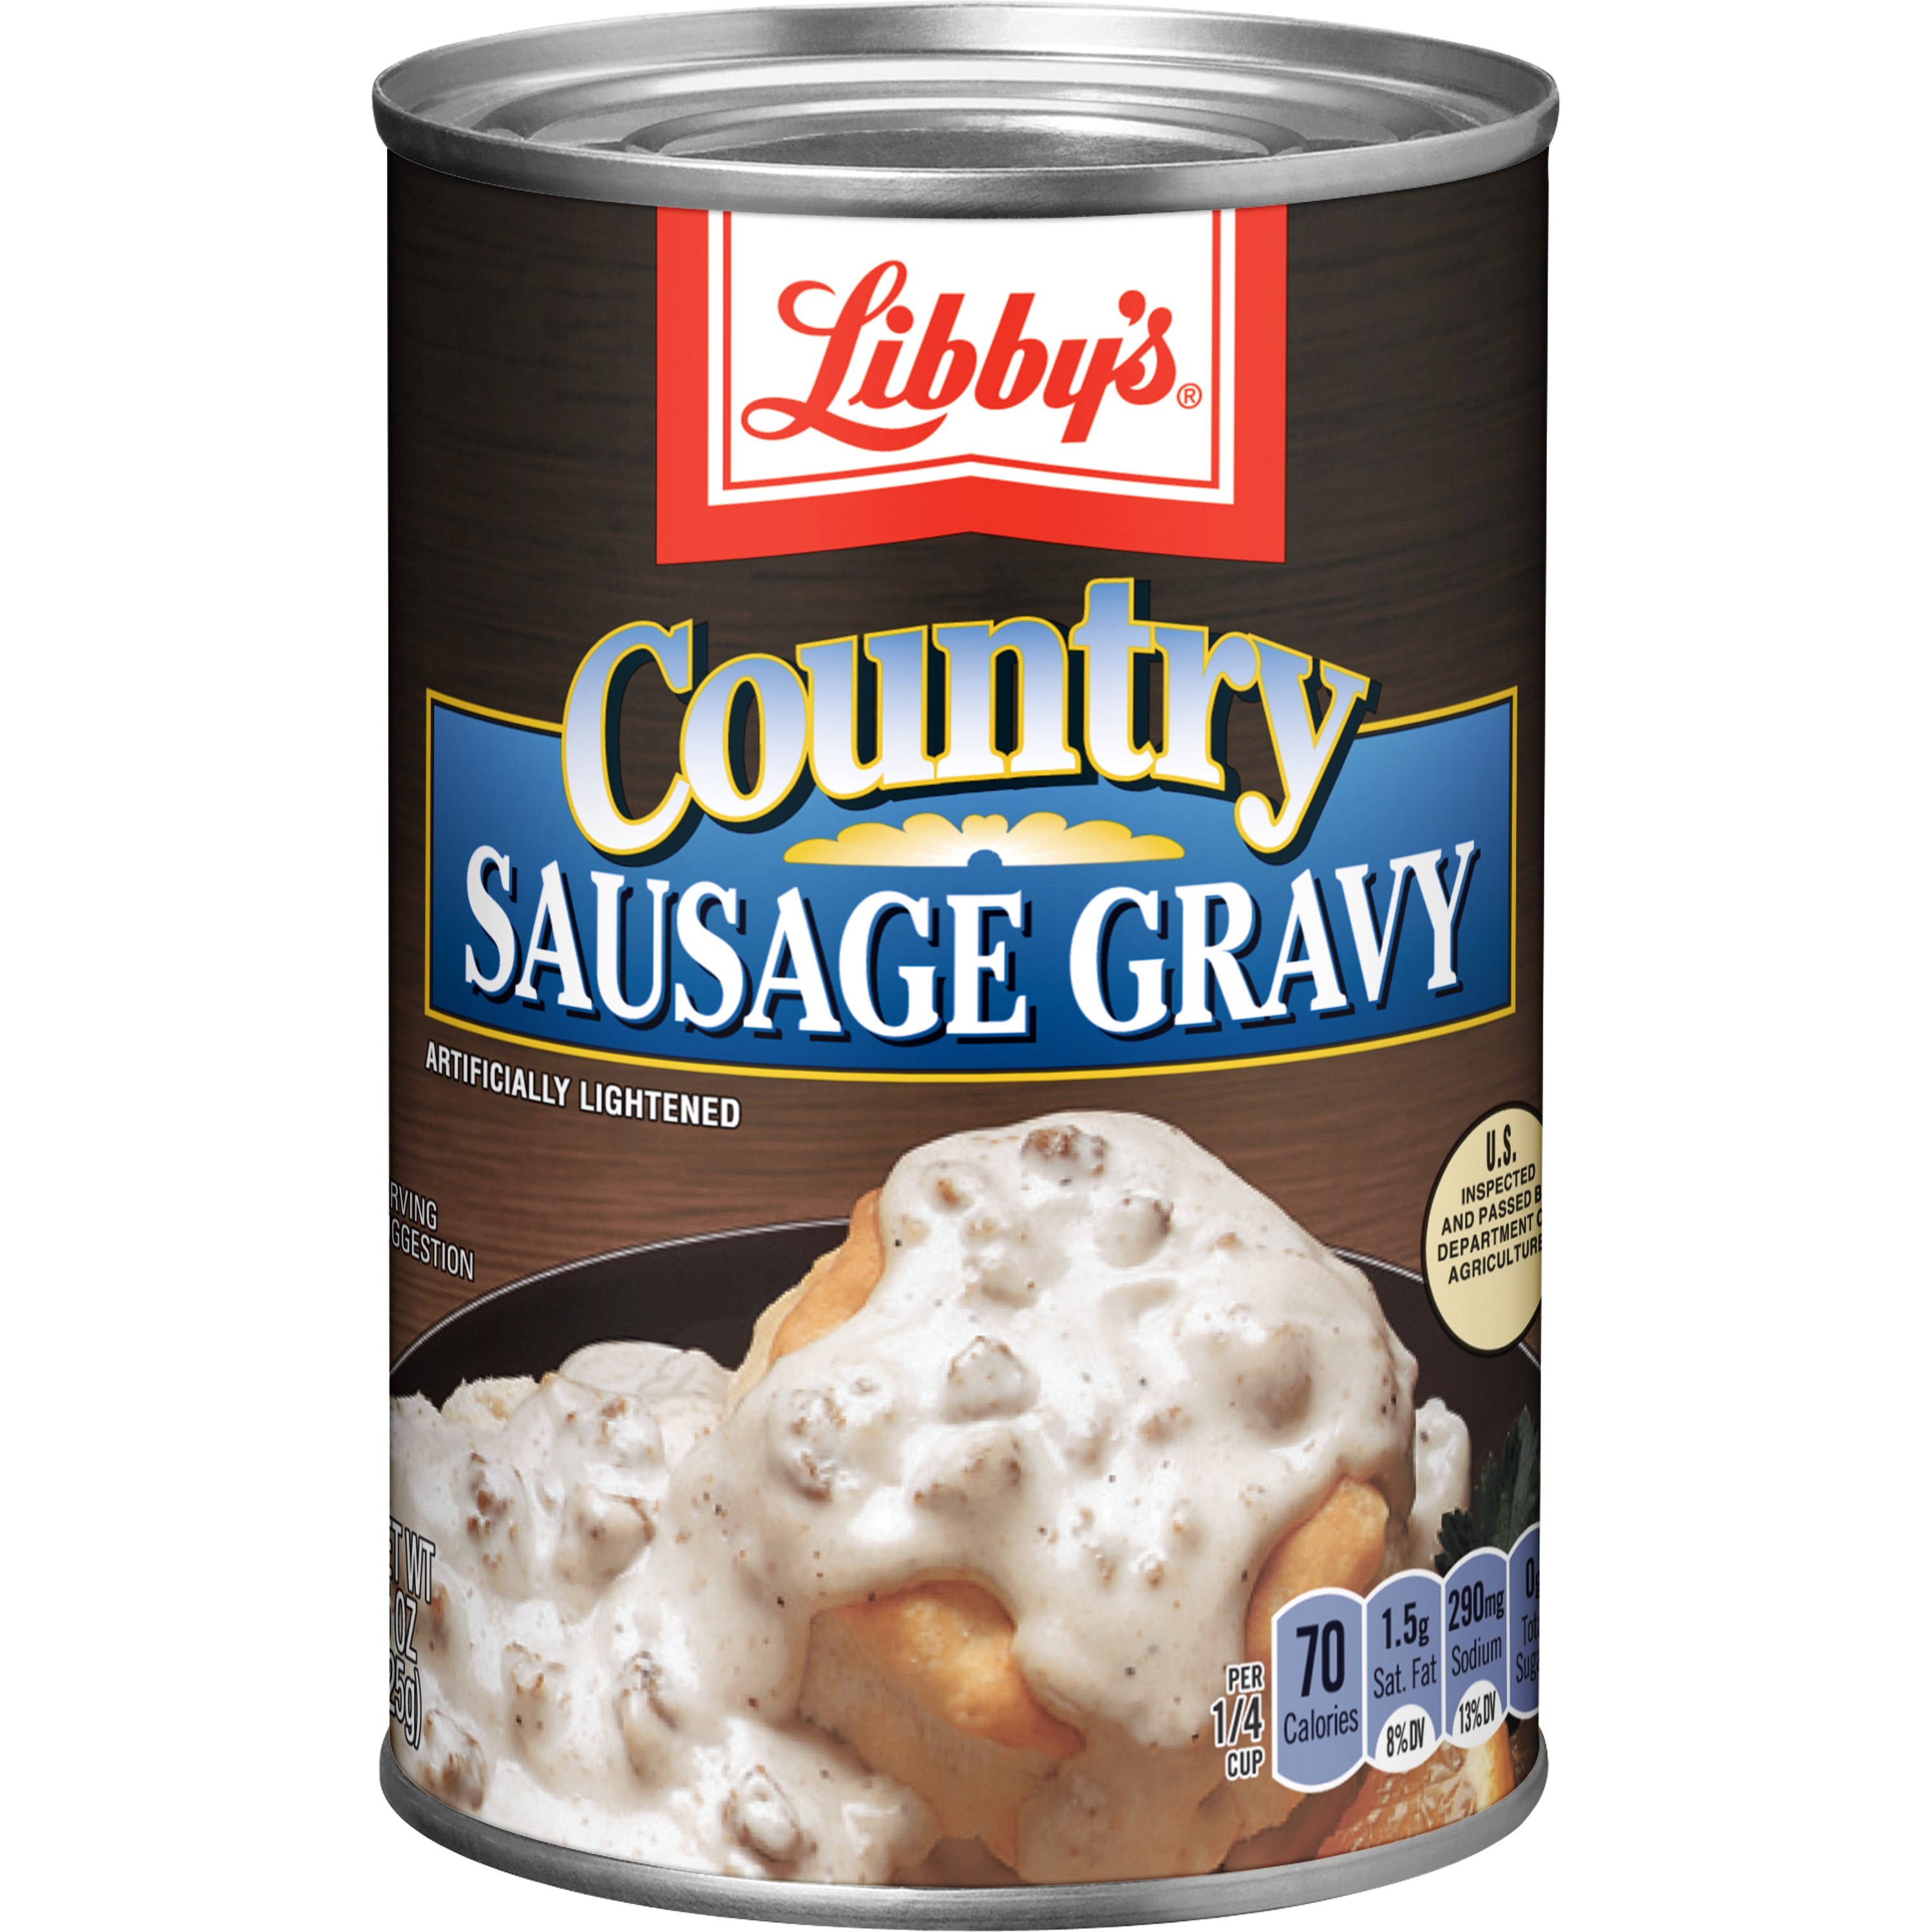 Libby's Country Sausage Gravy, 15 Ounce